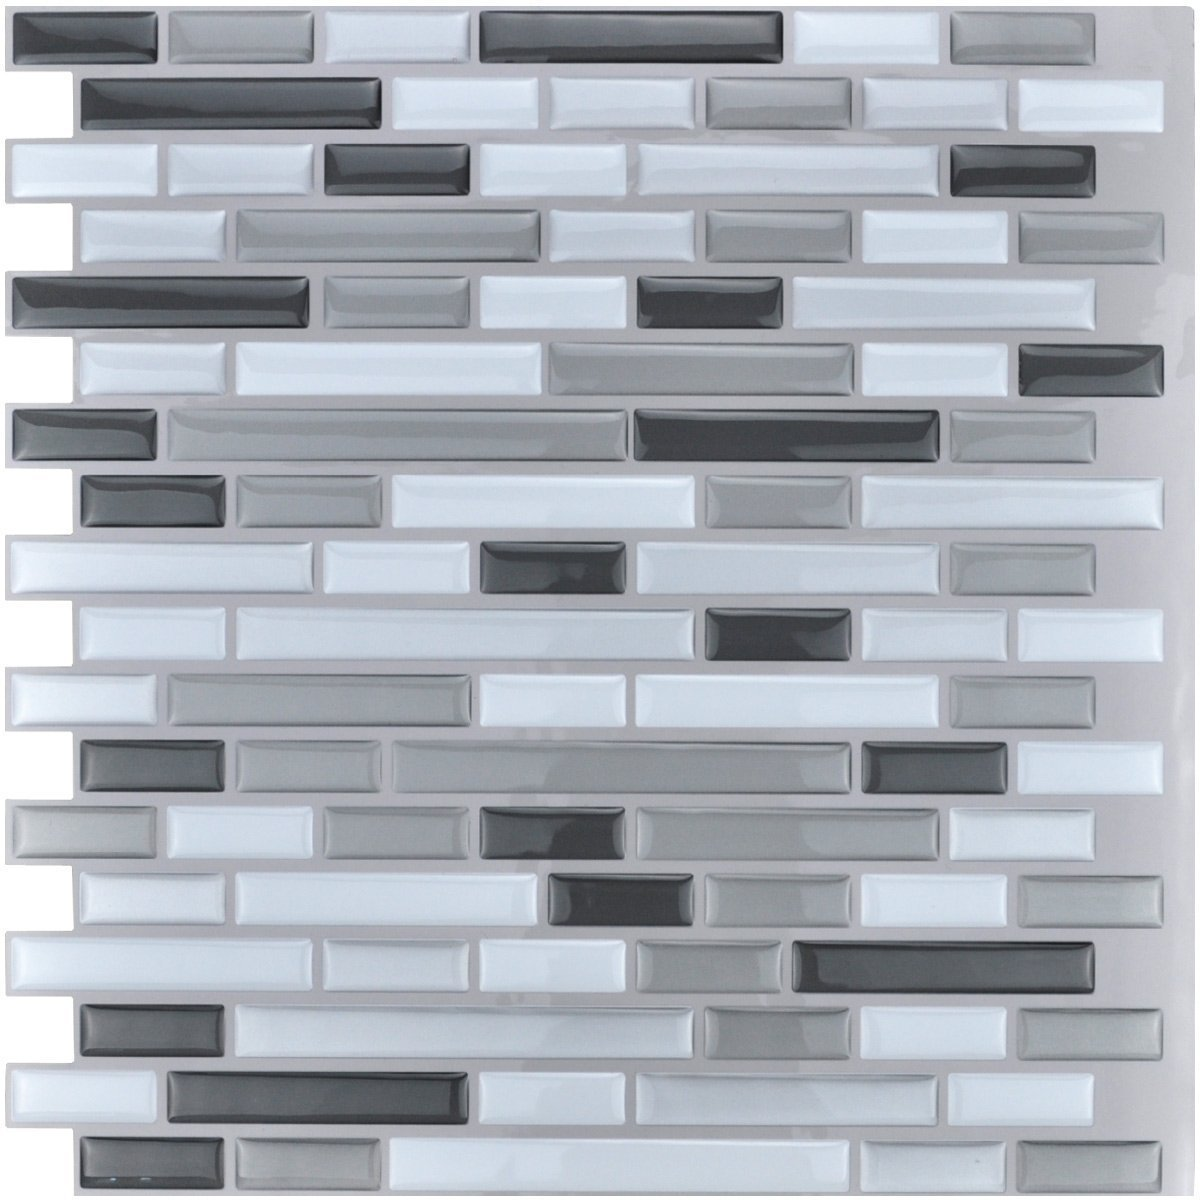 Art3d 10-Piece Stick on Backsplash Tile for Kitchen/Bathroom, 12\